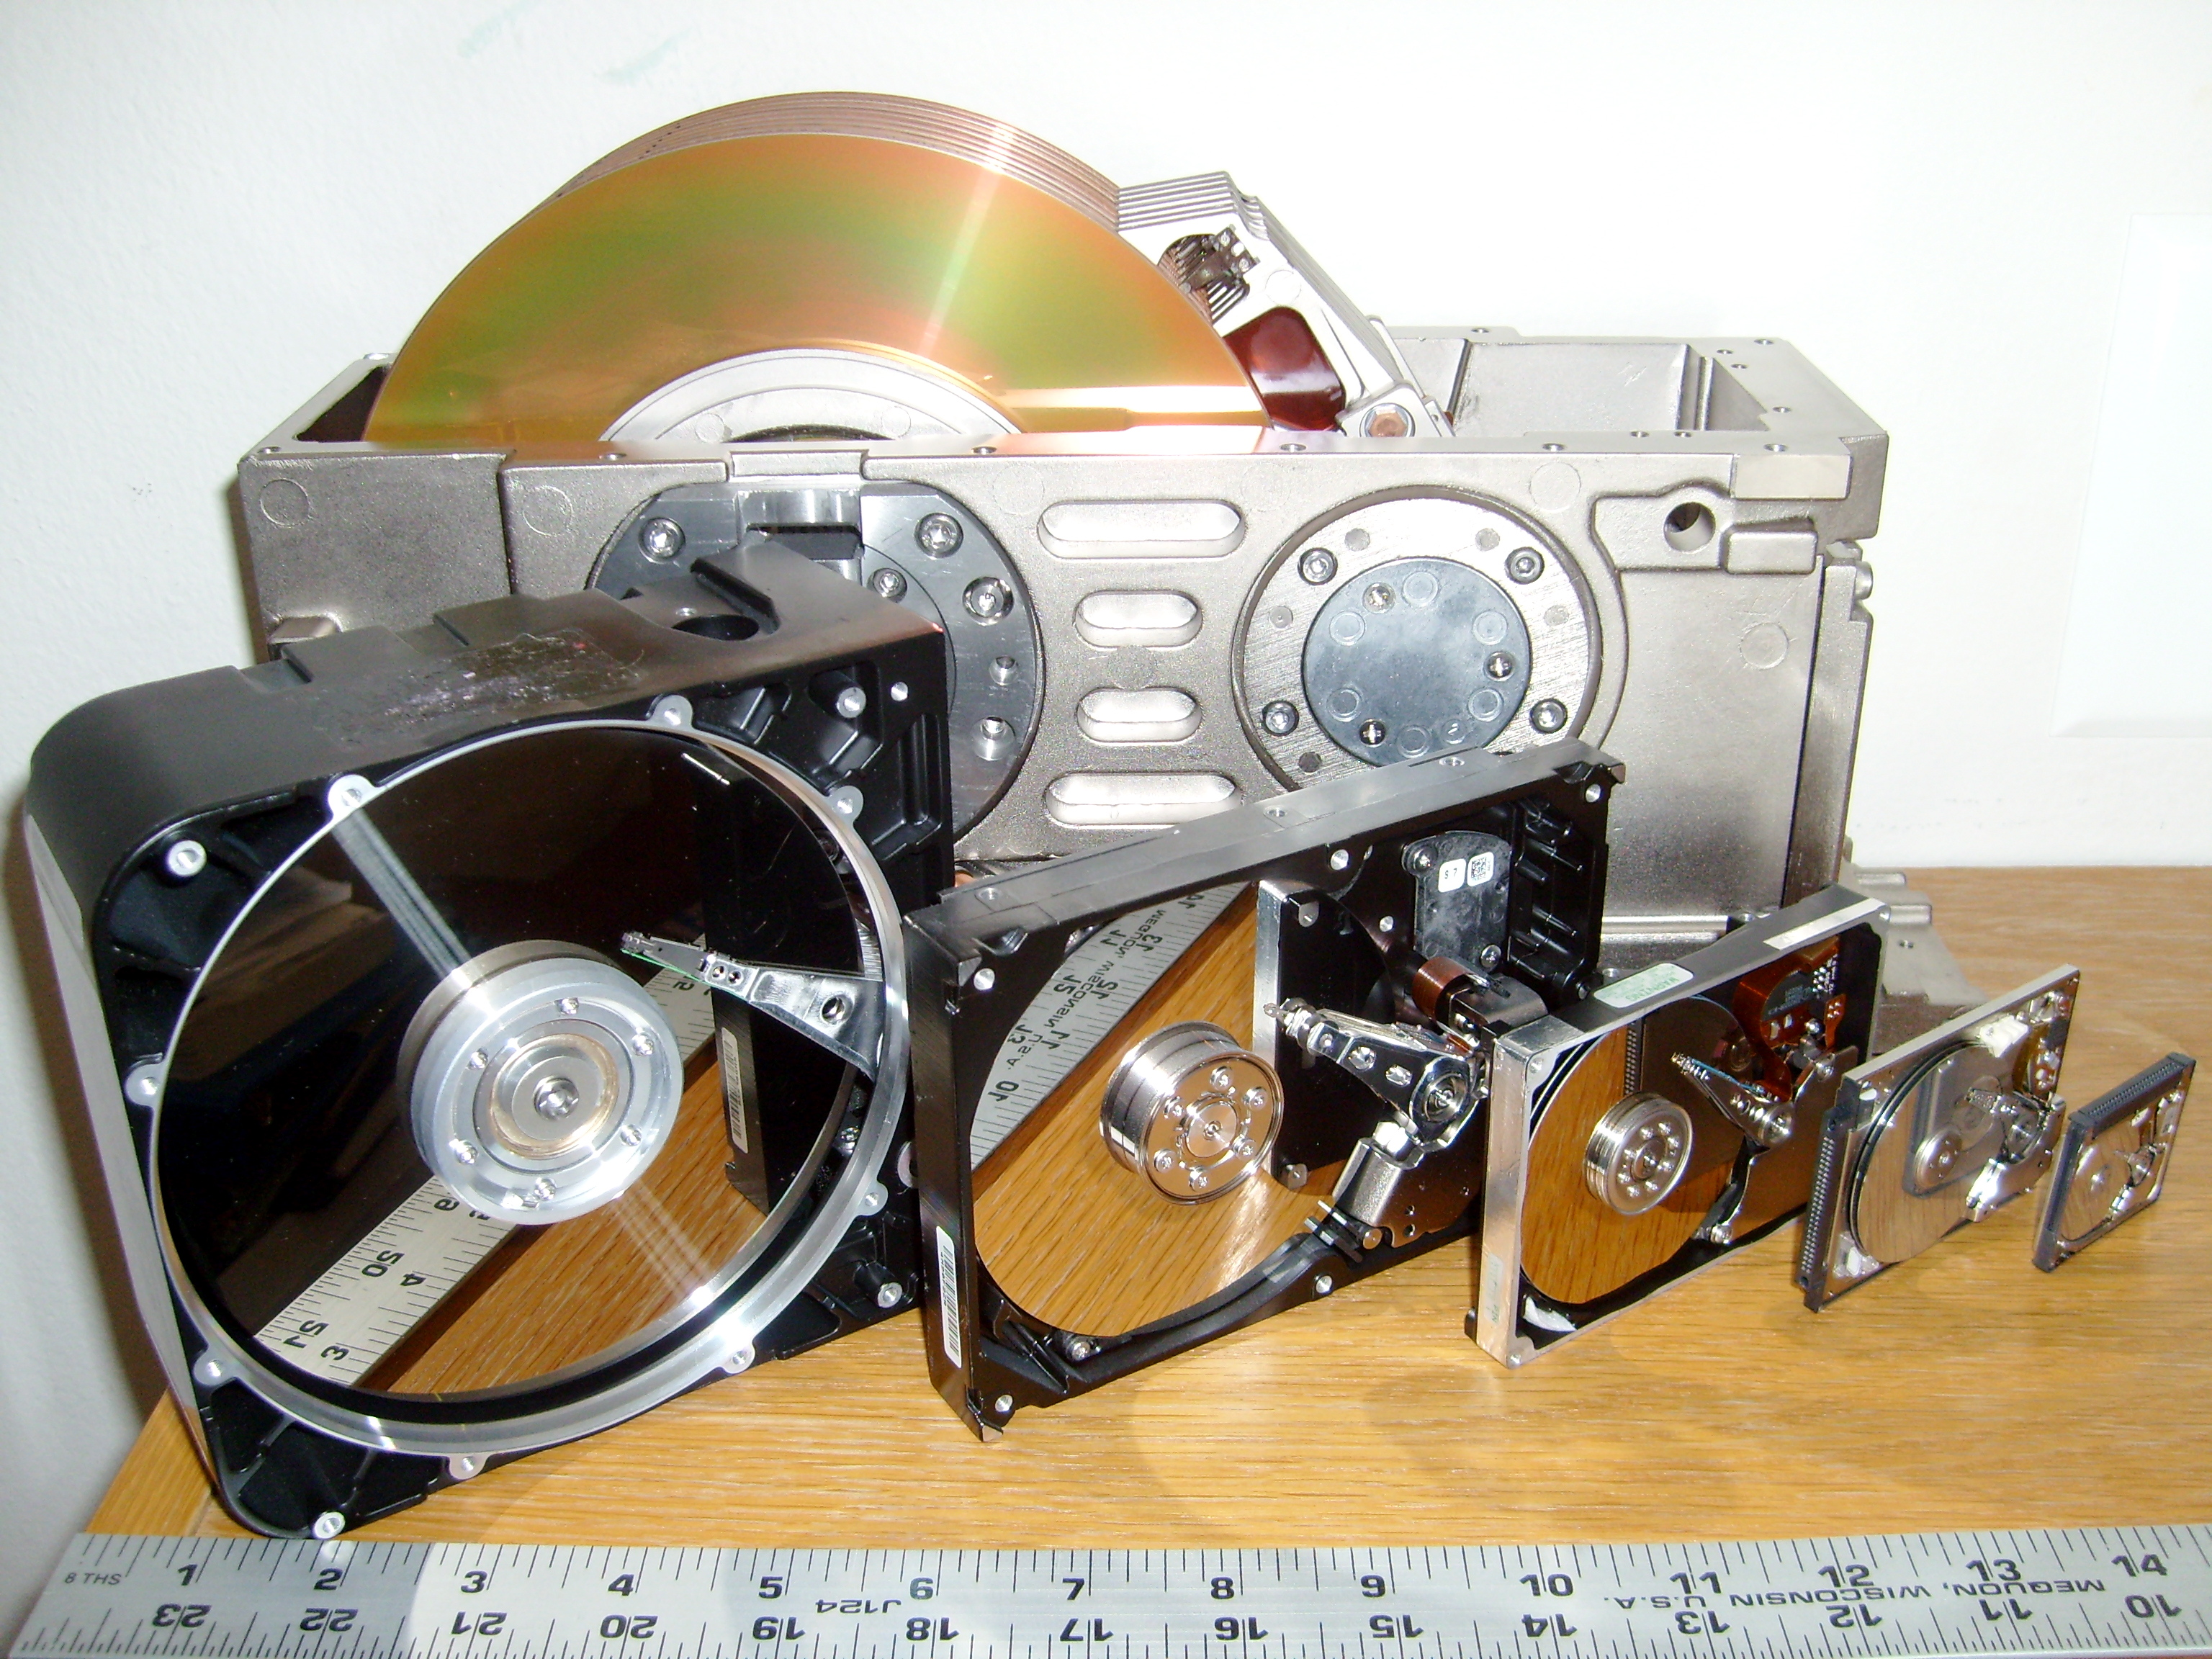 disk drive sizes